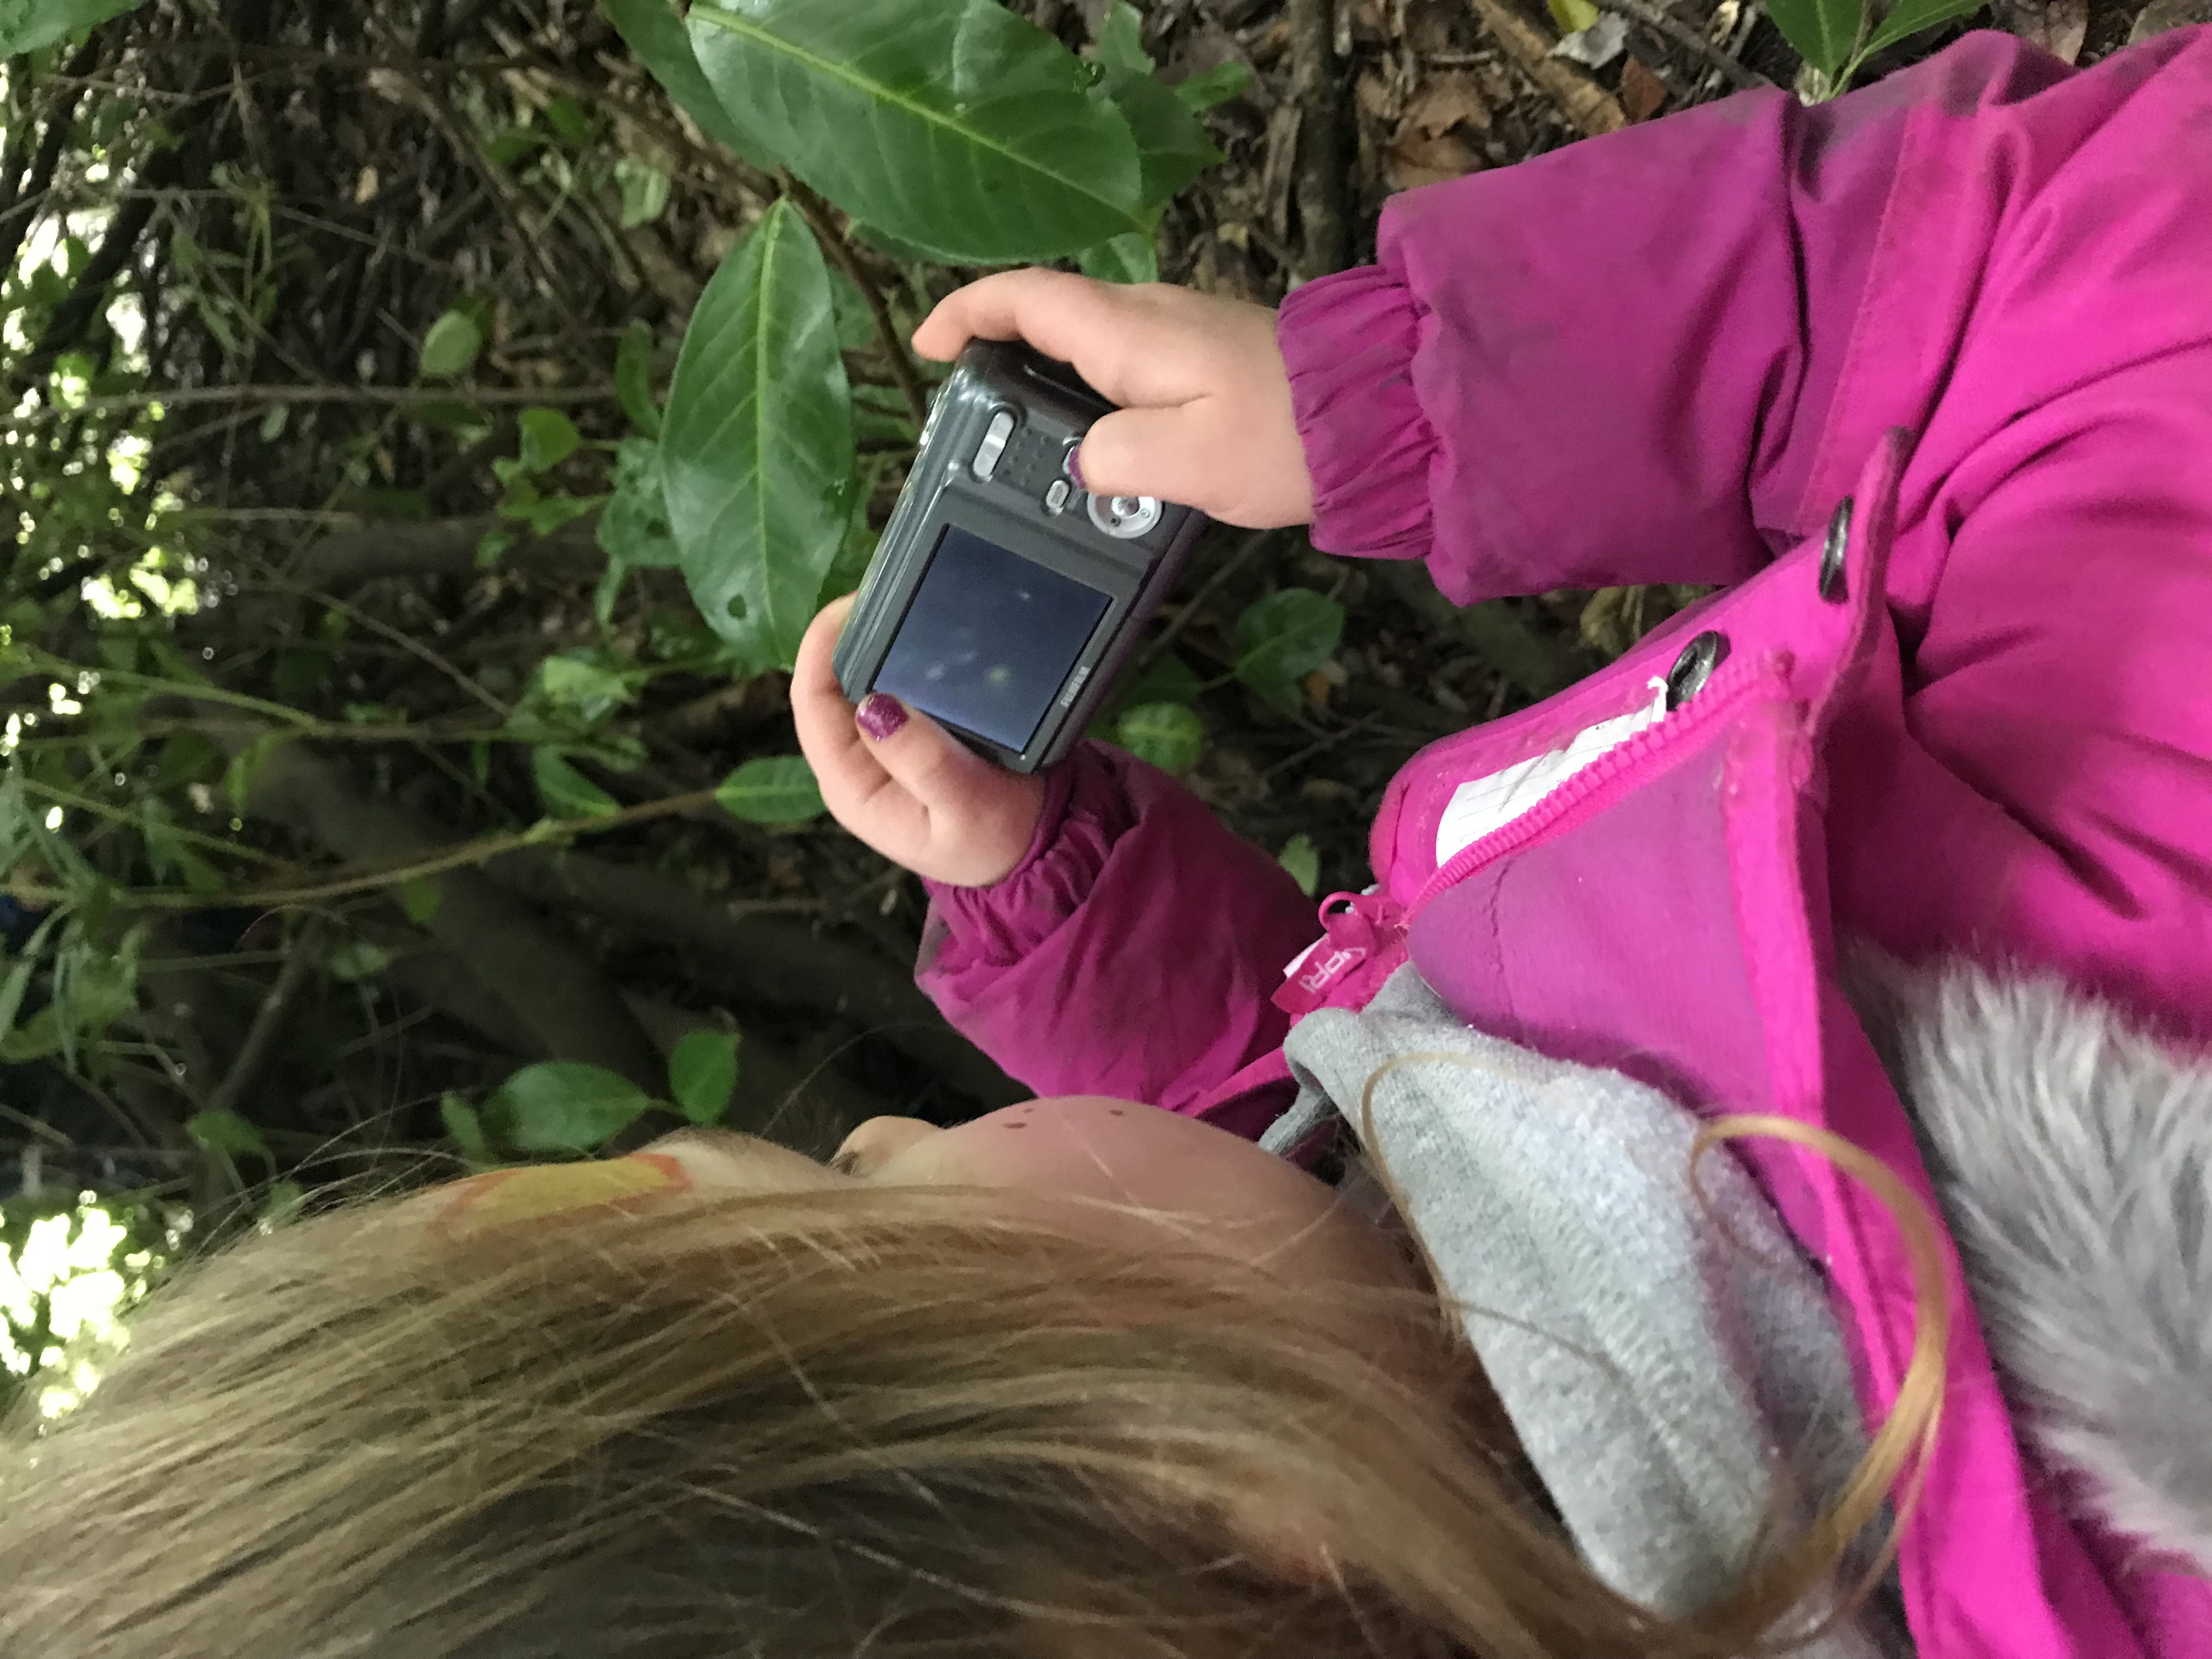 Technology the forest school way!